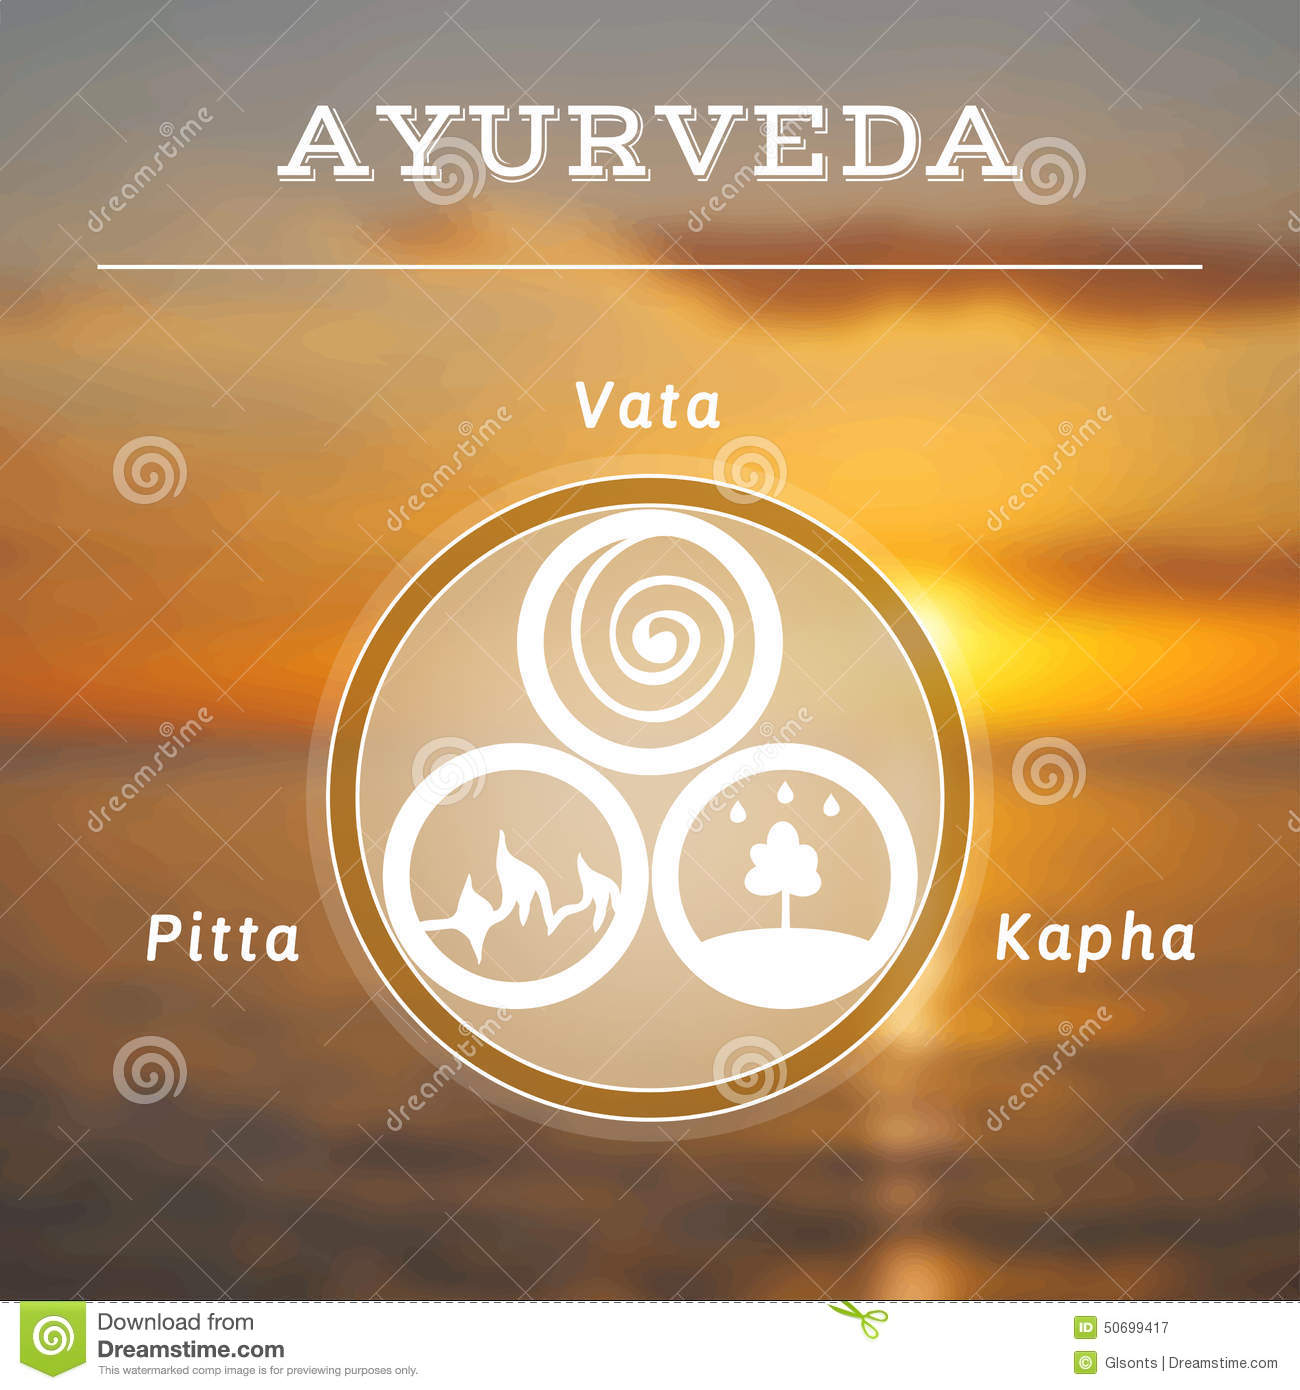 ayurvedic medicine pdf free download